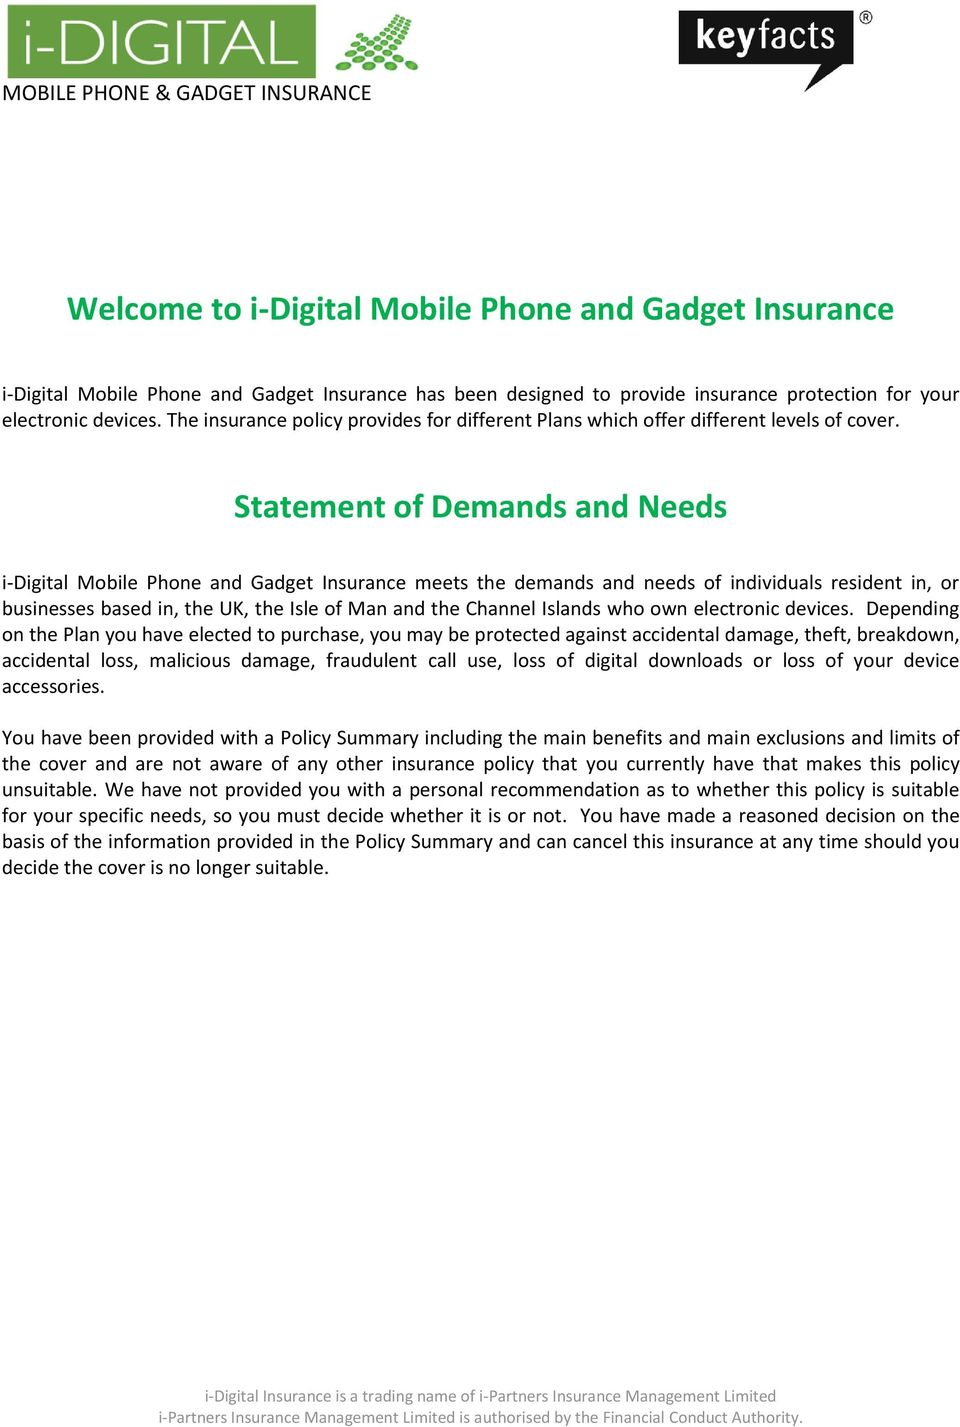 Statement of Demands and Needs i-digital Mobile Phone and Gadget Insurance meets the demands and needs of individuals resident in, or businesses based in, the UK, the Isle of Man and the Channel